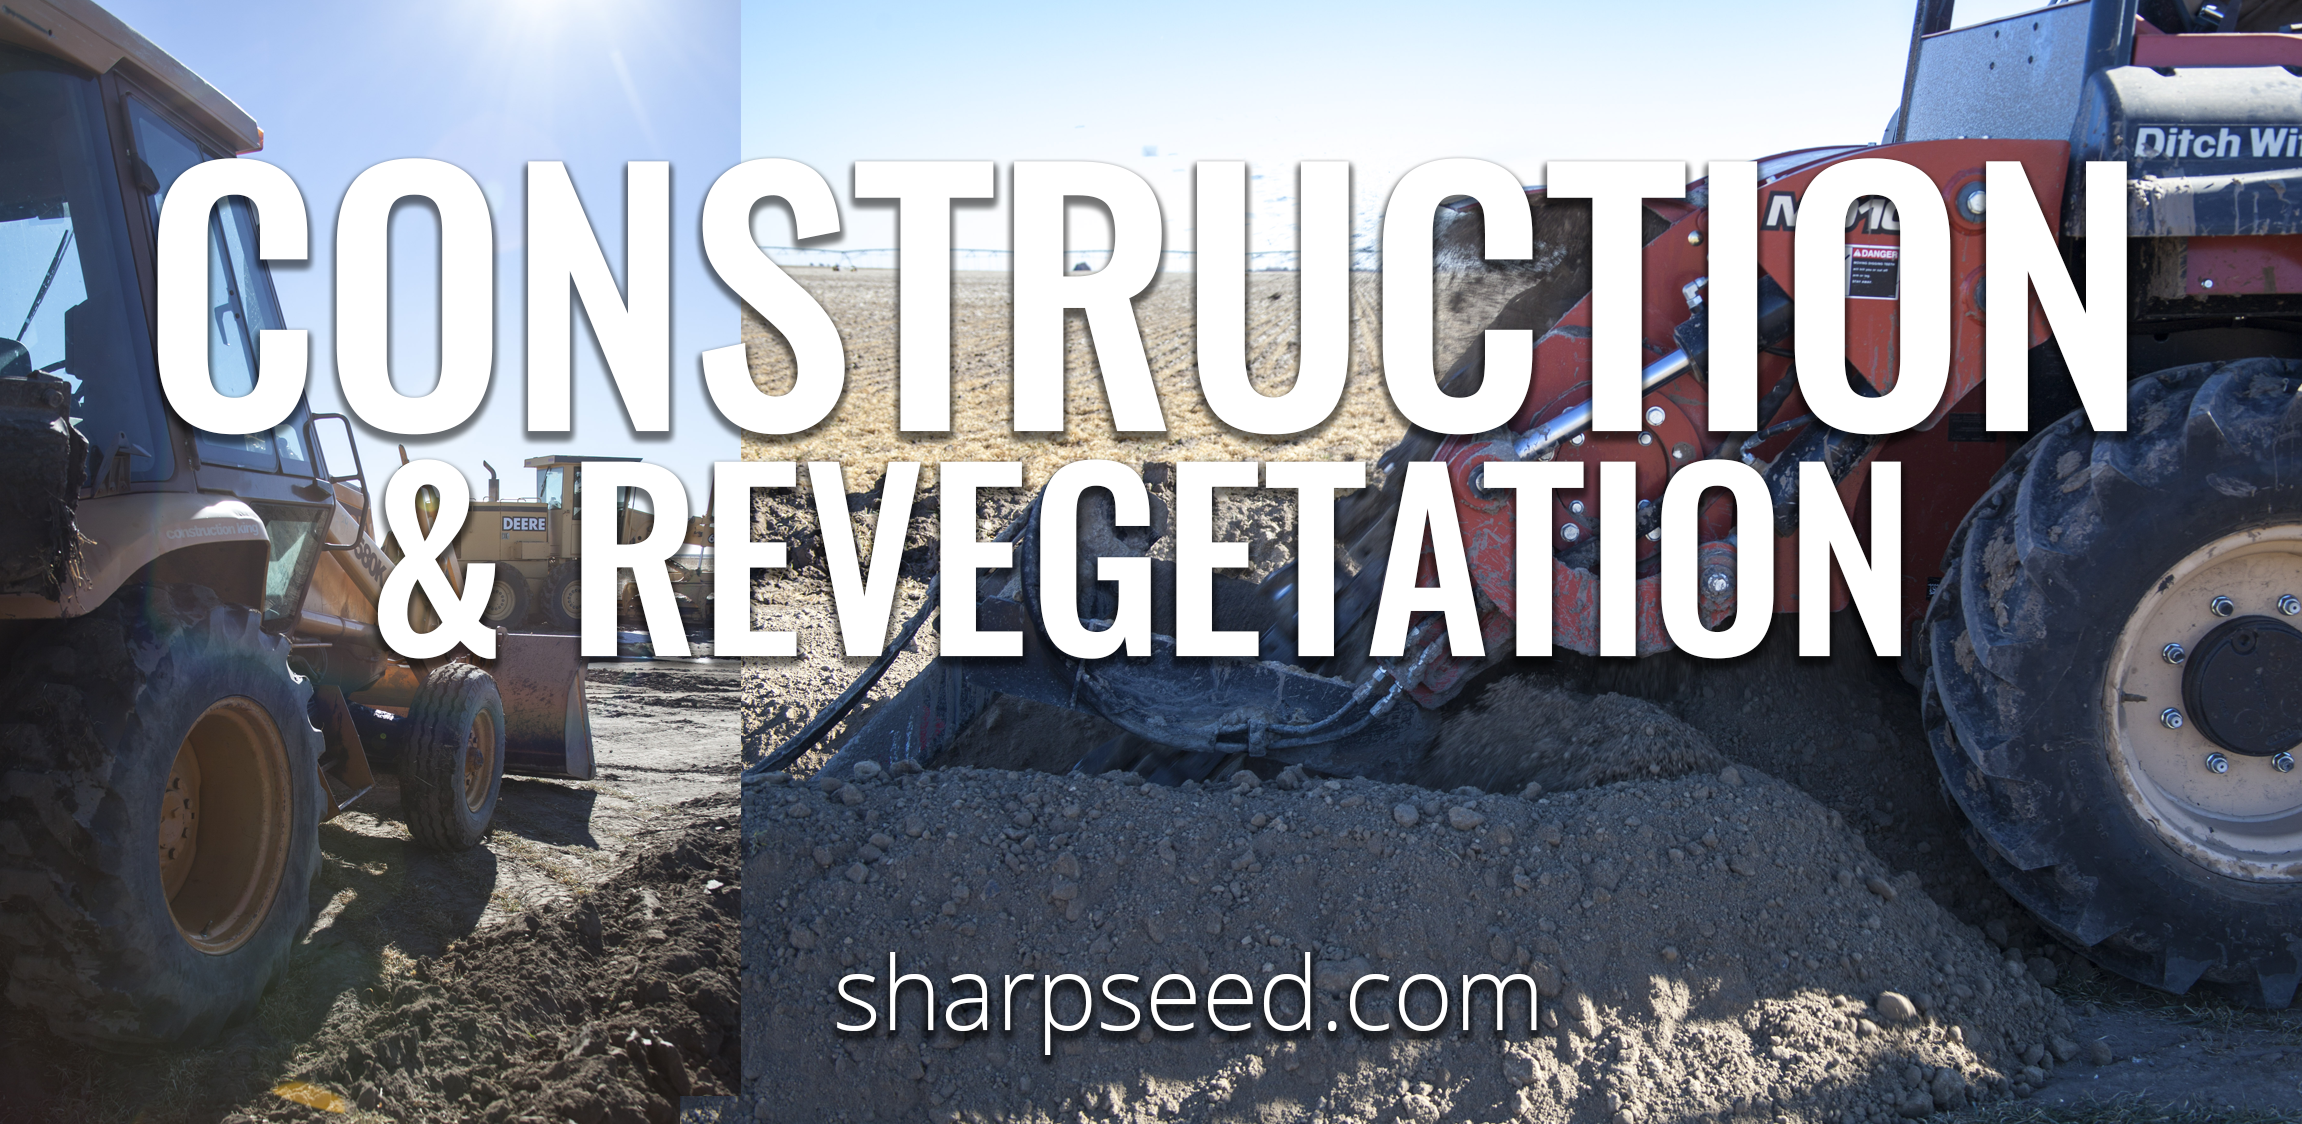 ​Construction/ Engineering Revegetation